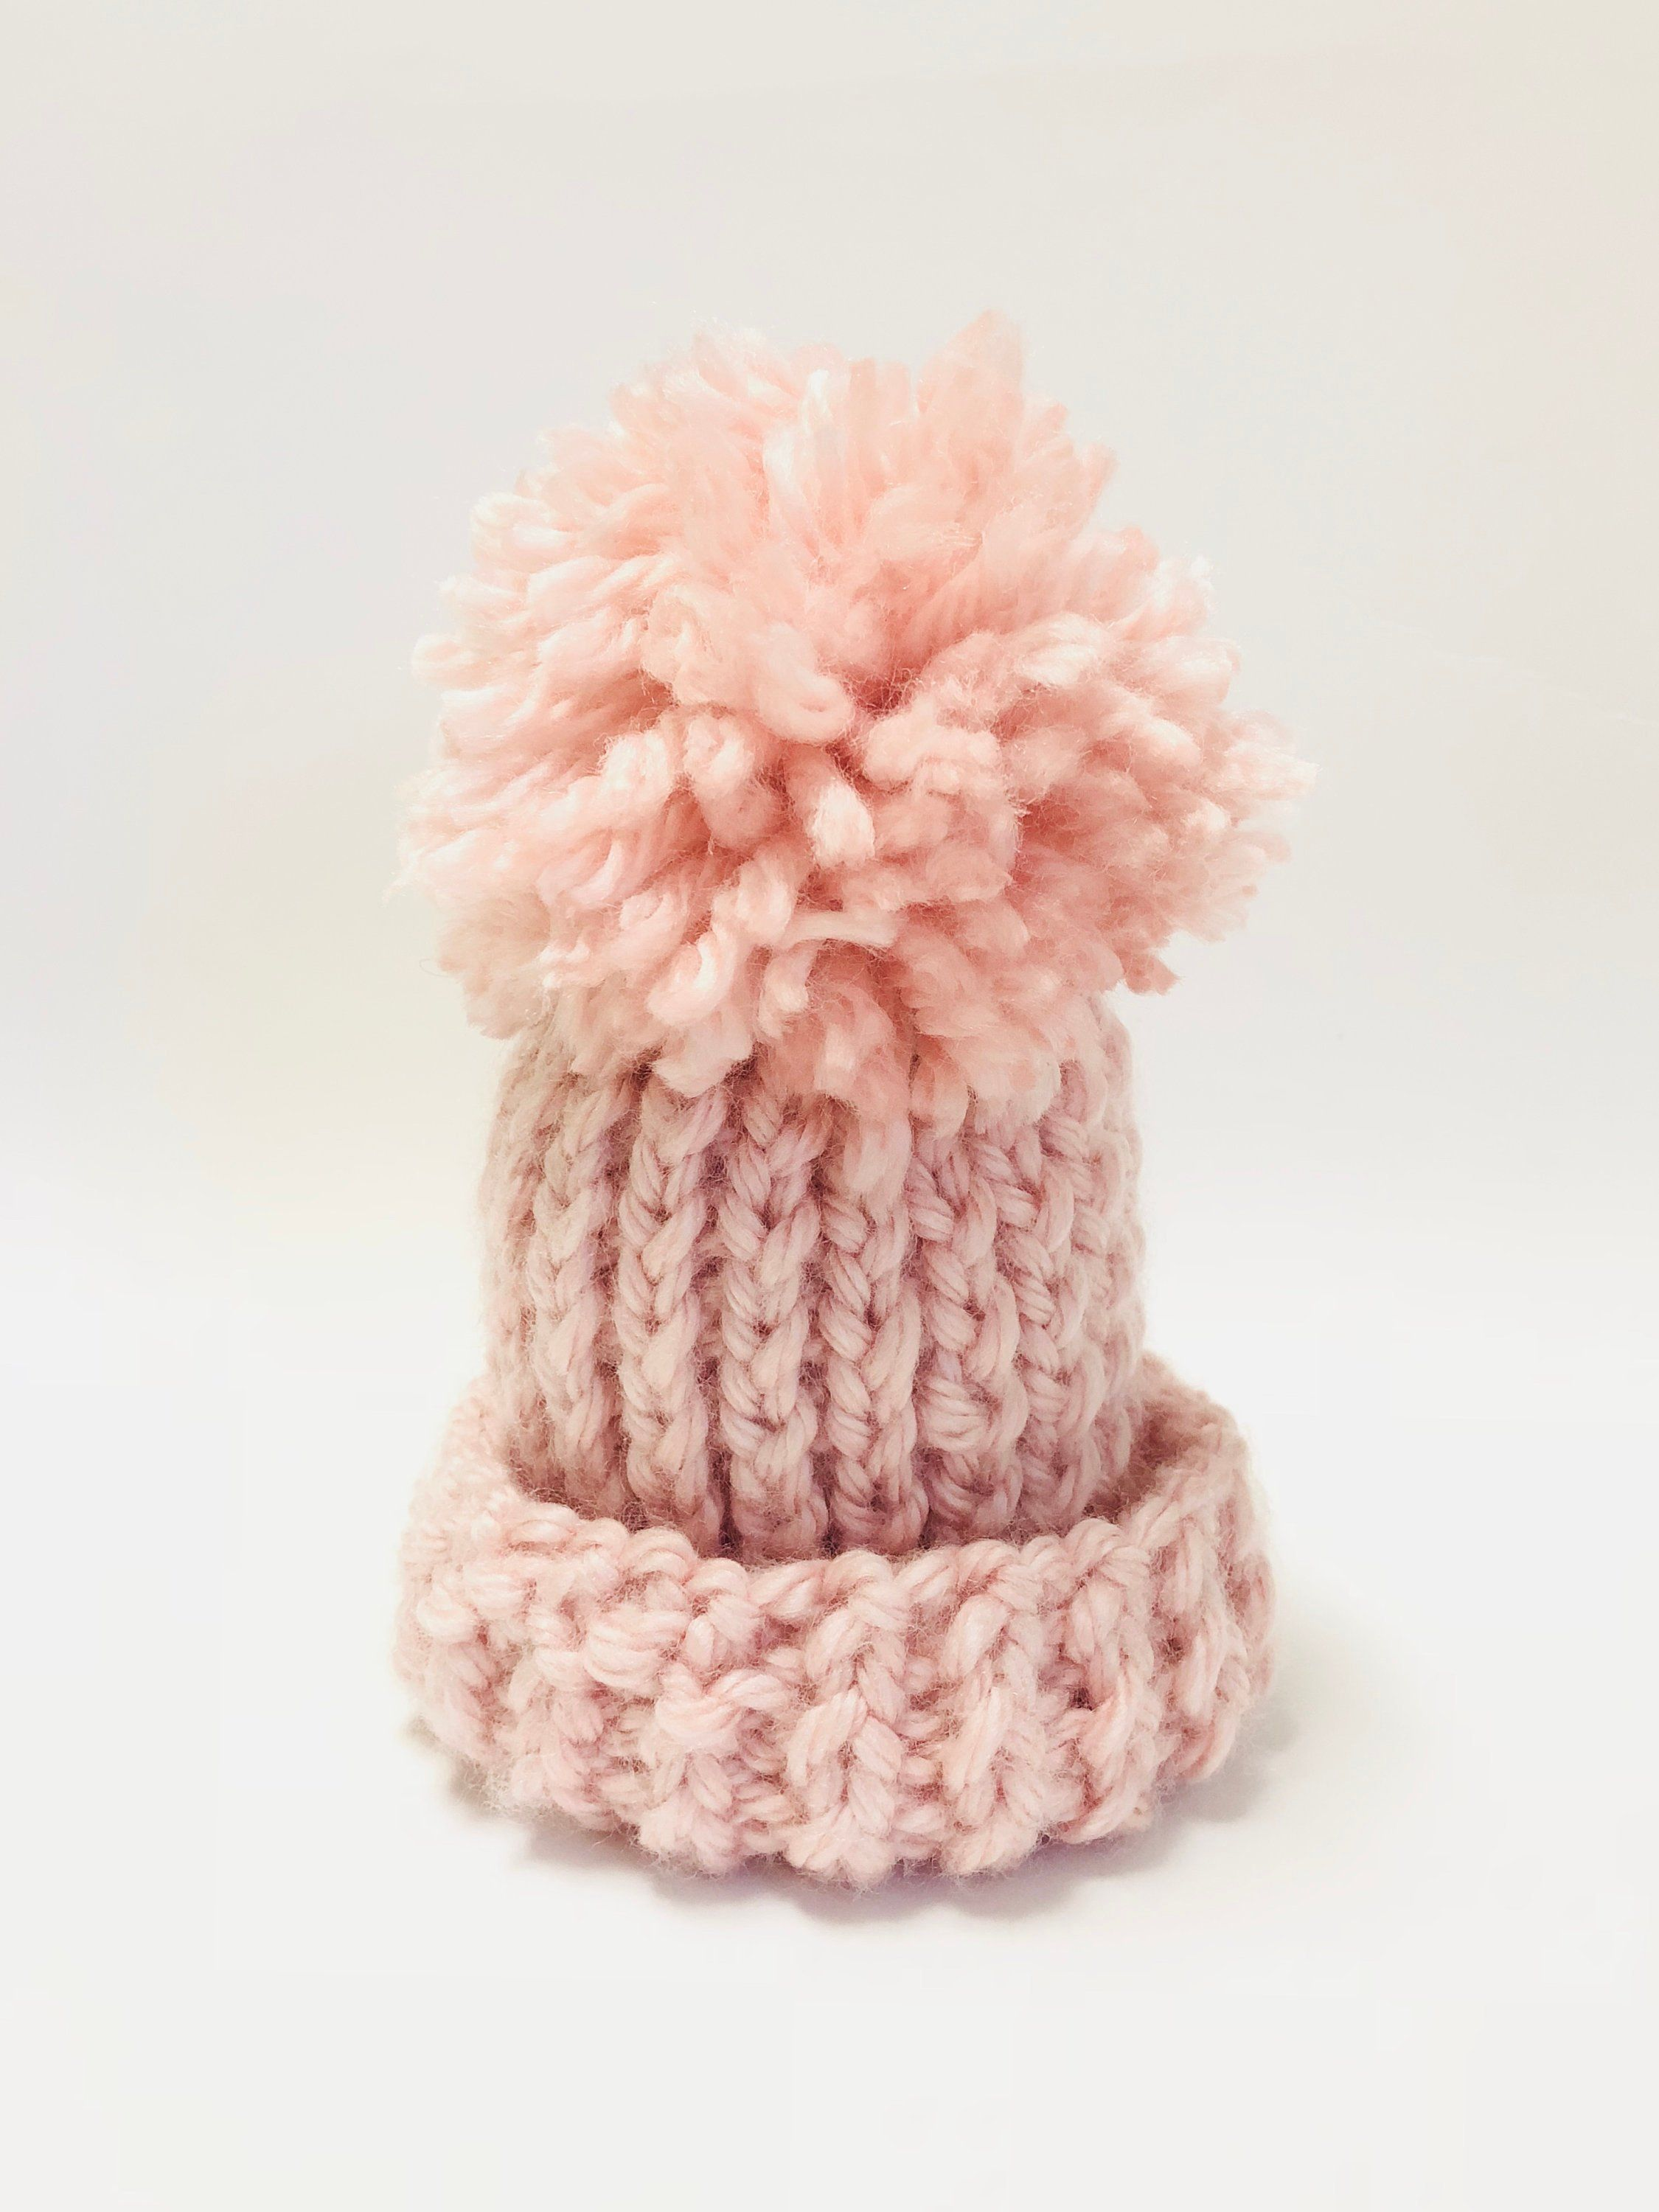 dd551c136ed Handmade Pink Super Thick Chunky Vegan Knitted Newborn Infant Child Hat  With Pom Pom Custom Unisex by TotallyStitchedShop on Etsy